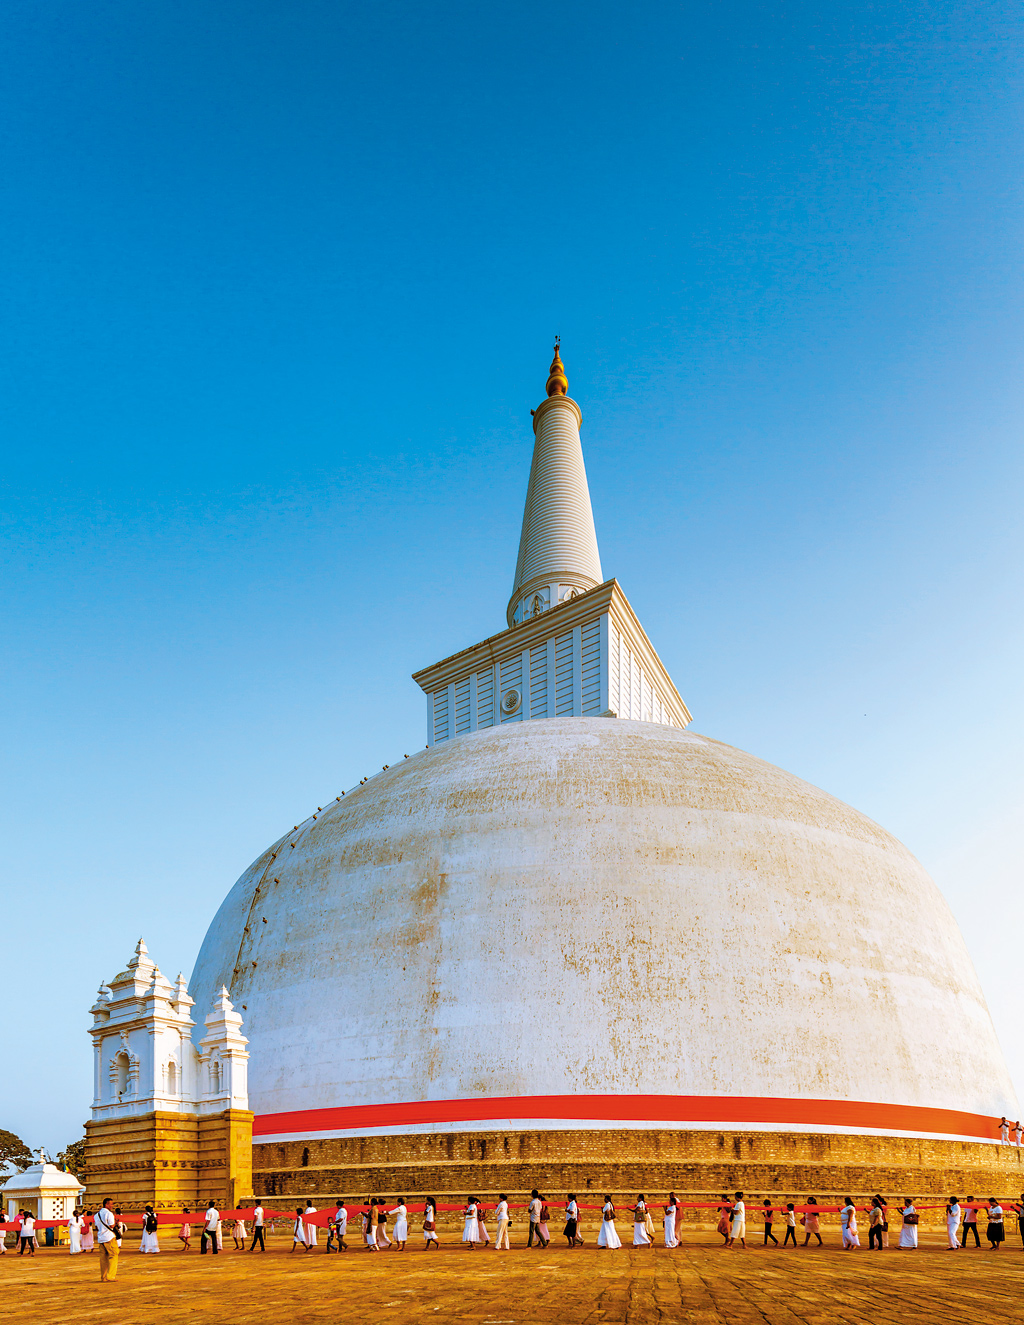 The Ruwanwelisaya Stupa in Anuradhapura, Sri Lanka. The largest stupa in Sri Lanka's first capital (4th to 11th century CE) is draped in 1,100 feet of saffron cloth 3-4 times a day. Buddha's relics are believed to be inside the stupa.